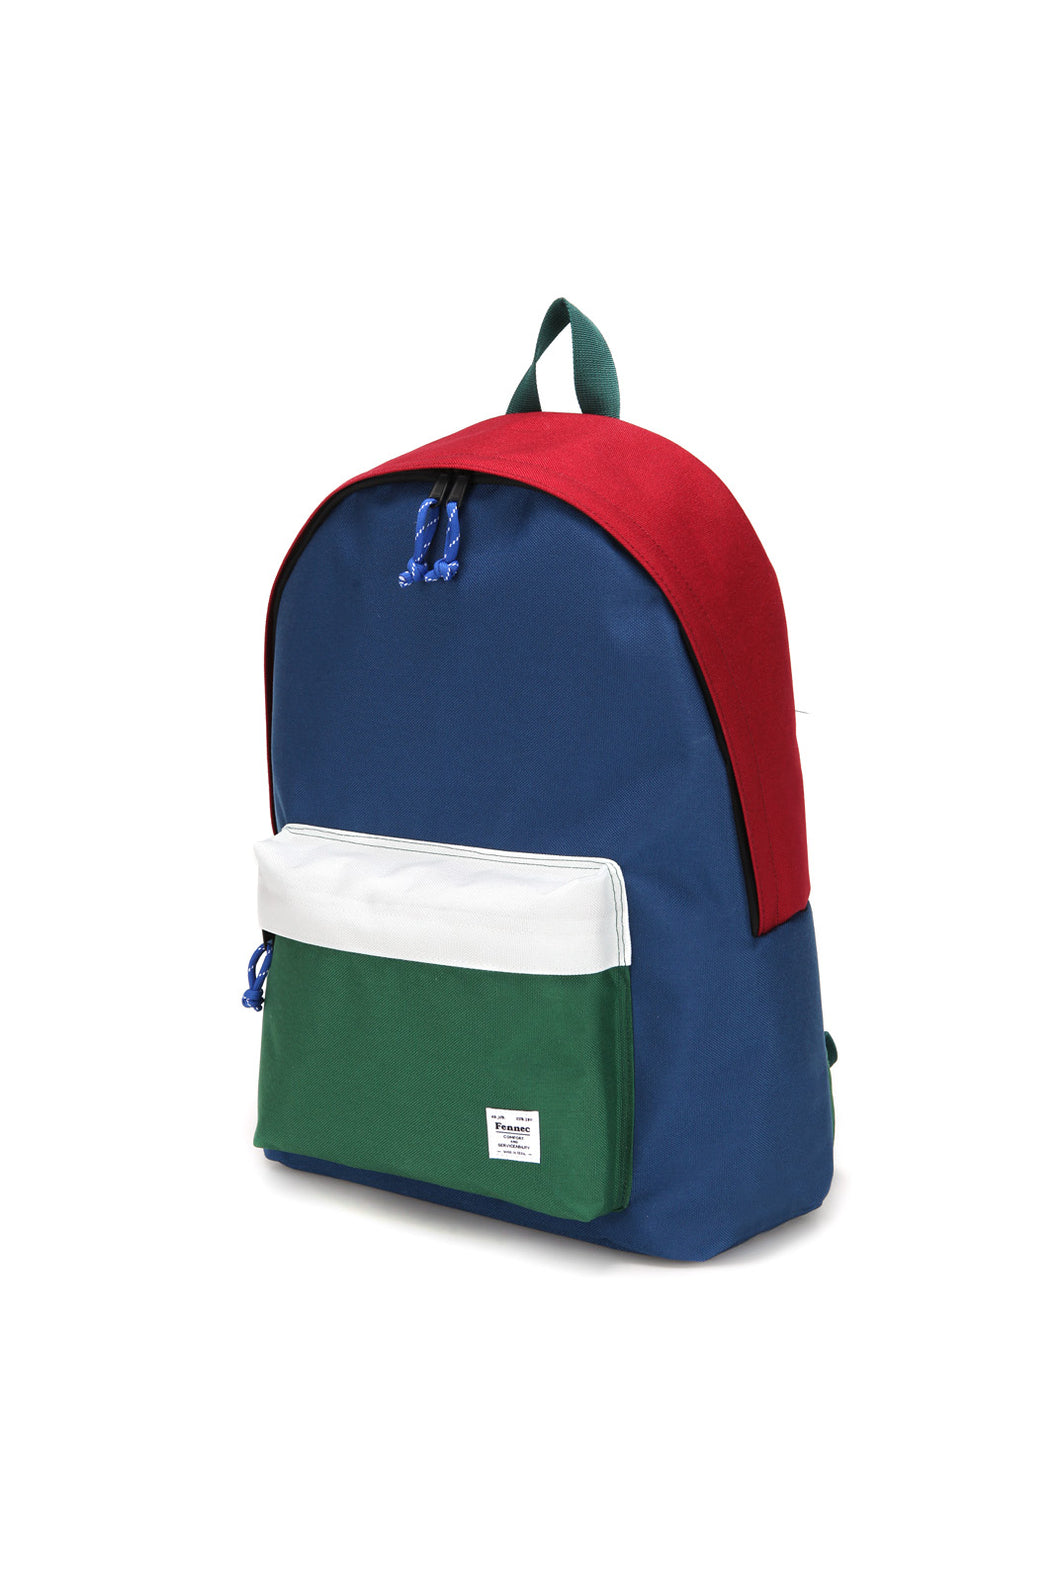 Fennec - C & S - Backpack - Multicolour Blue